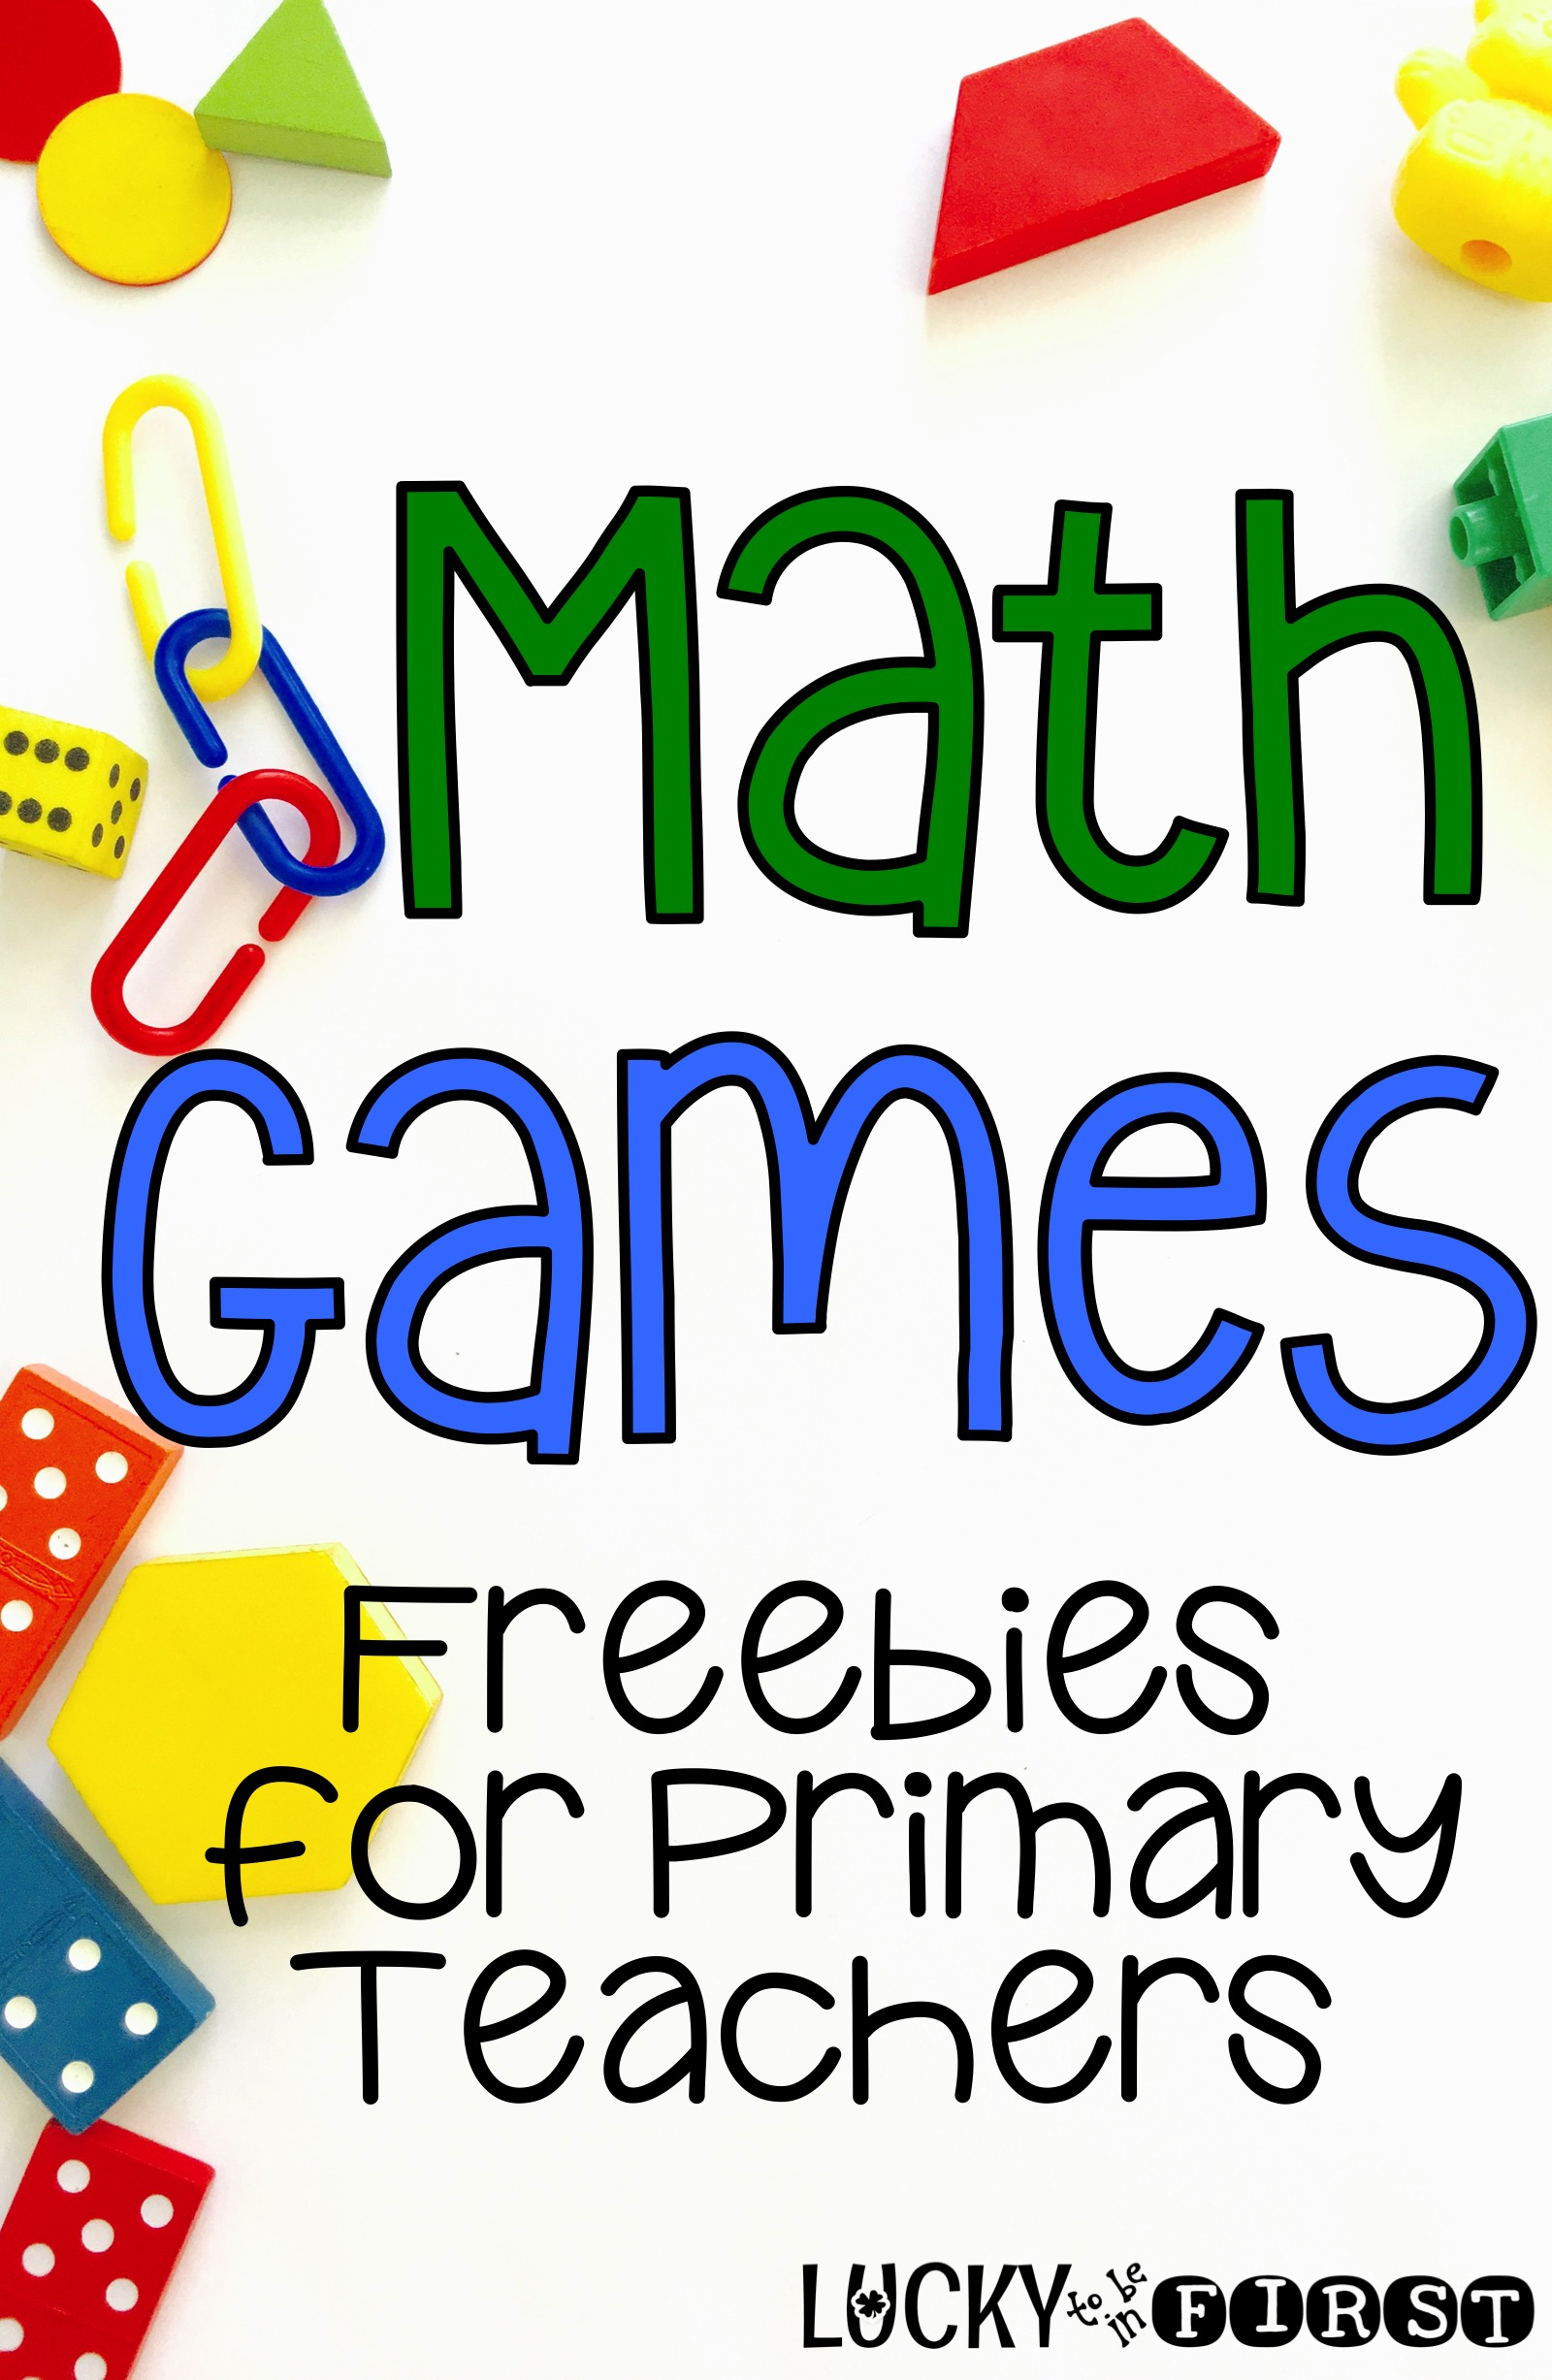 Math Games! Snag a bunch of Math Games for your primary kiddos!